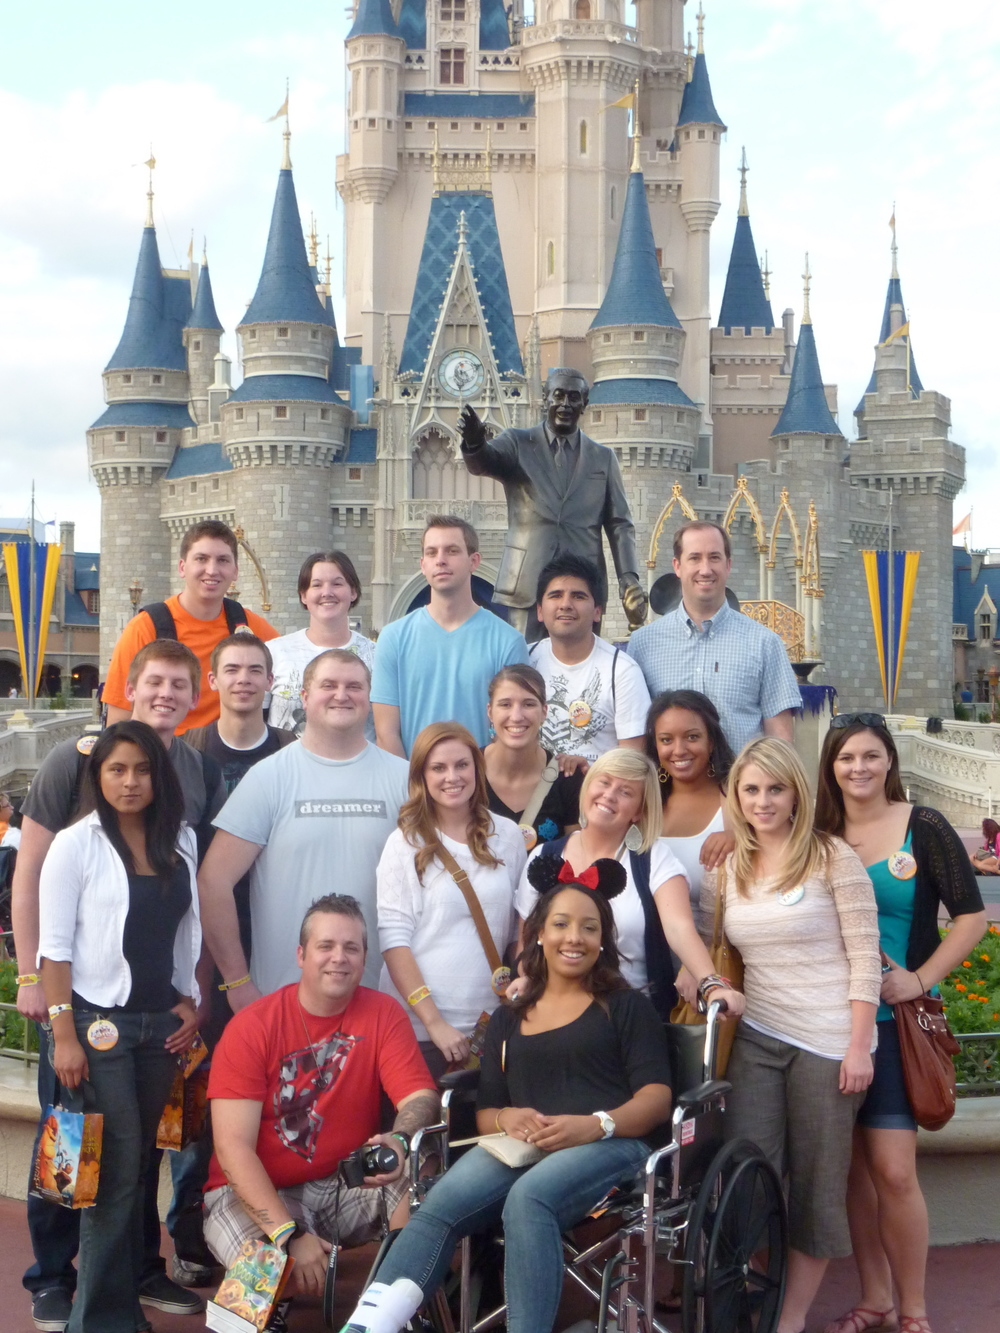 PR students in Orlando - Disney castle.jpg